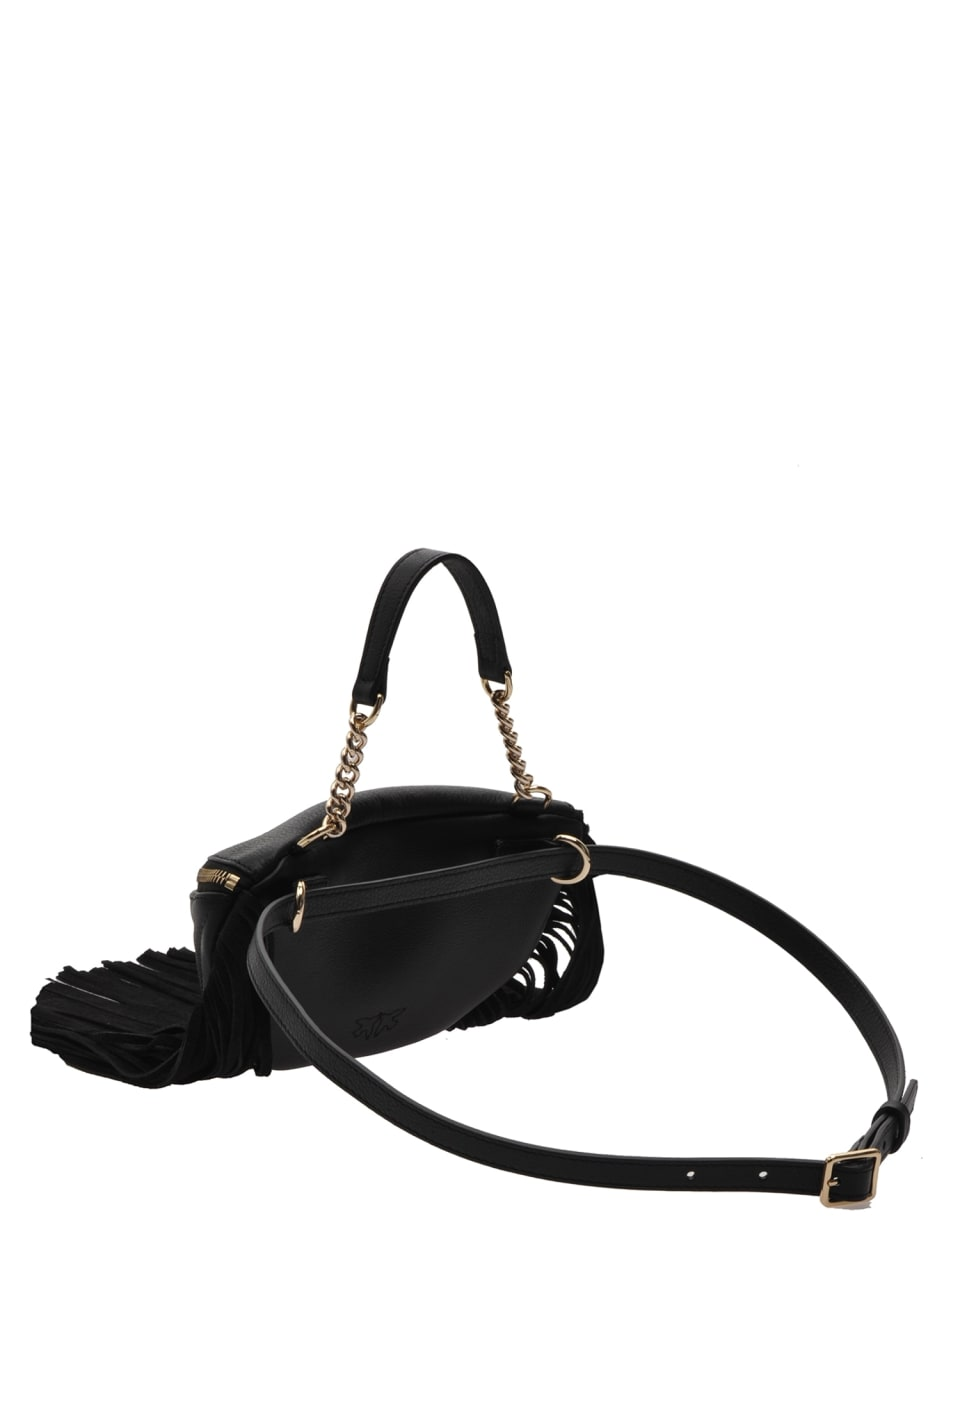 Mini Fringes Bum Bag in nappa leather